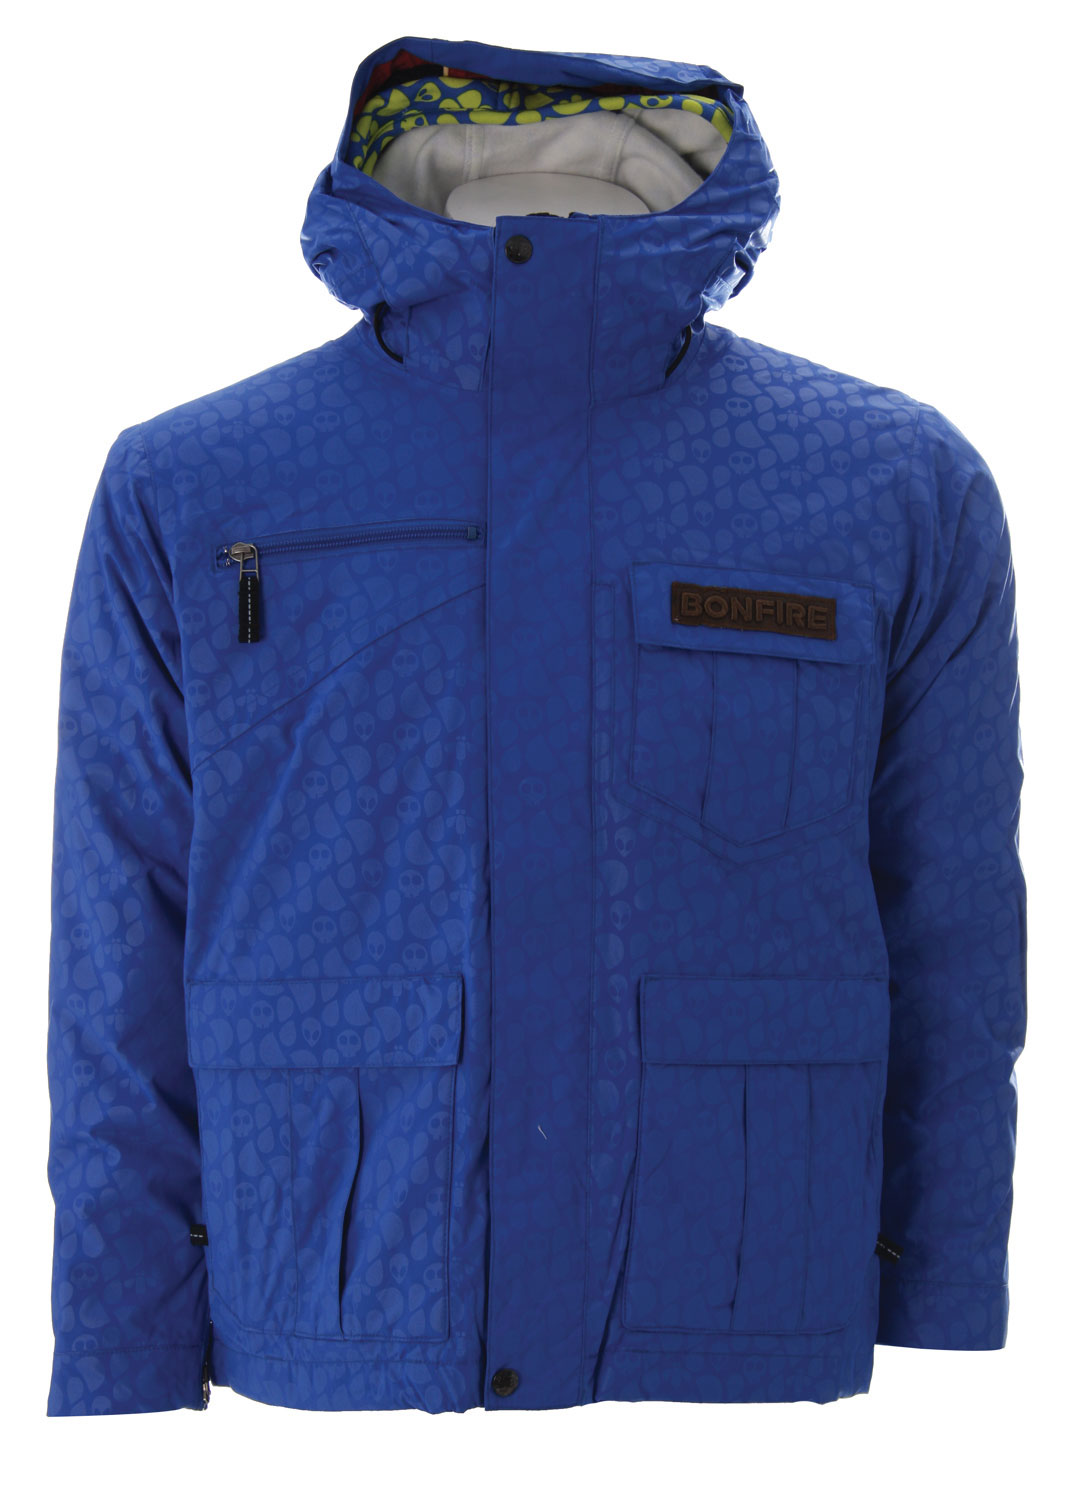 Snowboard Get the versatile advantage of outerwear that's three jackets in one. The Bonfire Exchange Snowboard Jacket for kids can be worn three ways, to suit any forecast. Wear the poly-fill insulated Exchange with or without its removable warm waffle lining, or wear the stylish liner by itself. Designed with a shorter street-smart silhouette, the Exchange snowboard jacket features snap attachment system, plenty of pockets for the stuff kids can't seem to live without, and name tag on the back to prevent loss or mix-up. Subtle alien head embossed jacket finish wins raves from young riders, while moms approve of the fully taped seams and inset ear-warmer panels that seal out wind, water and cold.Key Features of The Bonfire Exchange Youth Snowboard Jacket: 7,000mm waterproof 5,000mm breathability 3-in-1. 60g Polyfill Insulation with Removable Fleece Hoodue Liner Waffle Fleece Lining Fully Taped Seam Alien Embossed Plain Weave Name Tag Center Back Label Ear Toaster Panels Snap Tite Connect System A Street Savvy Shorter Fit - $74.95